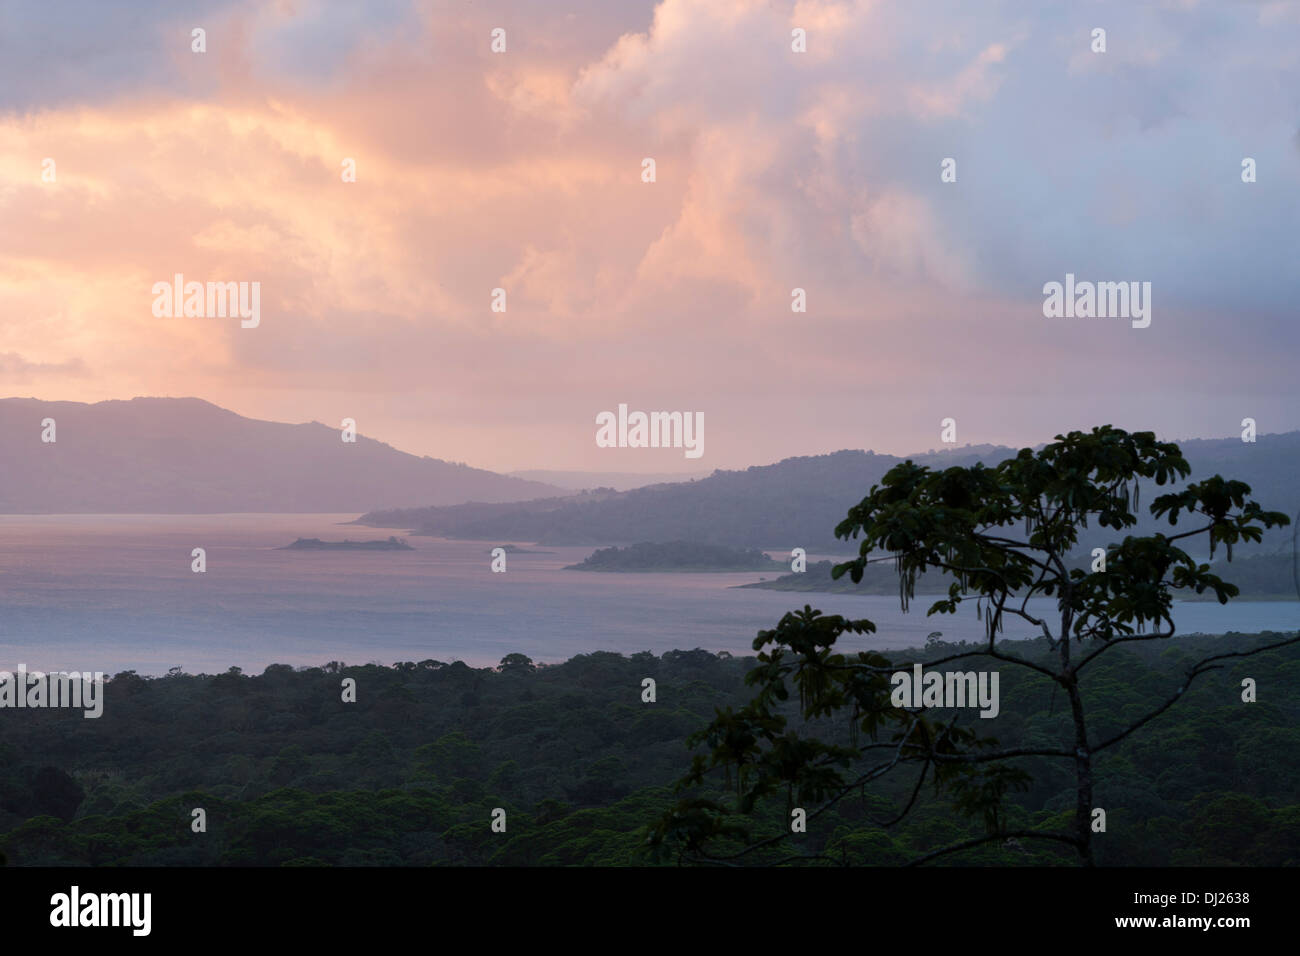 Lake Arenal is an artificial lake in Costa Rica, located in the northern highlands of the country. - Stock Image